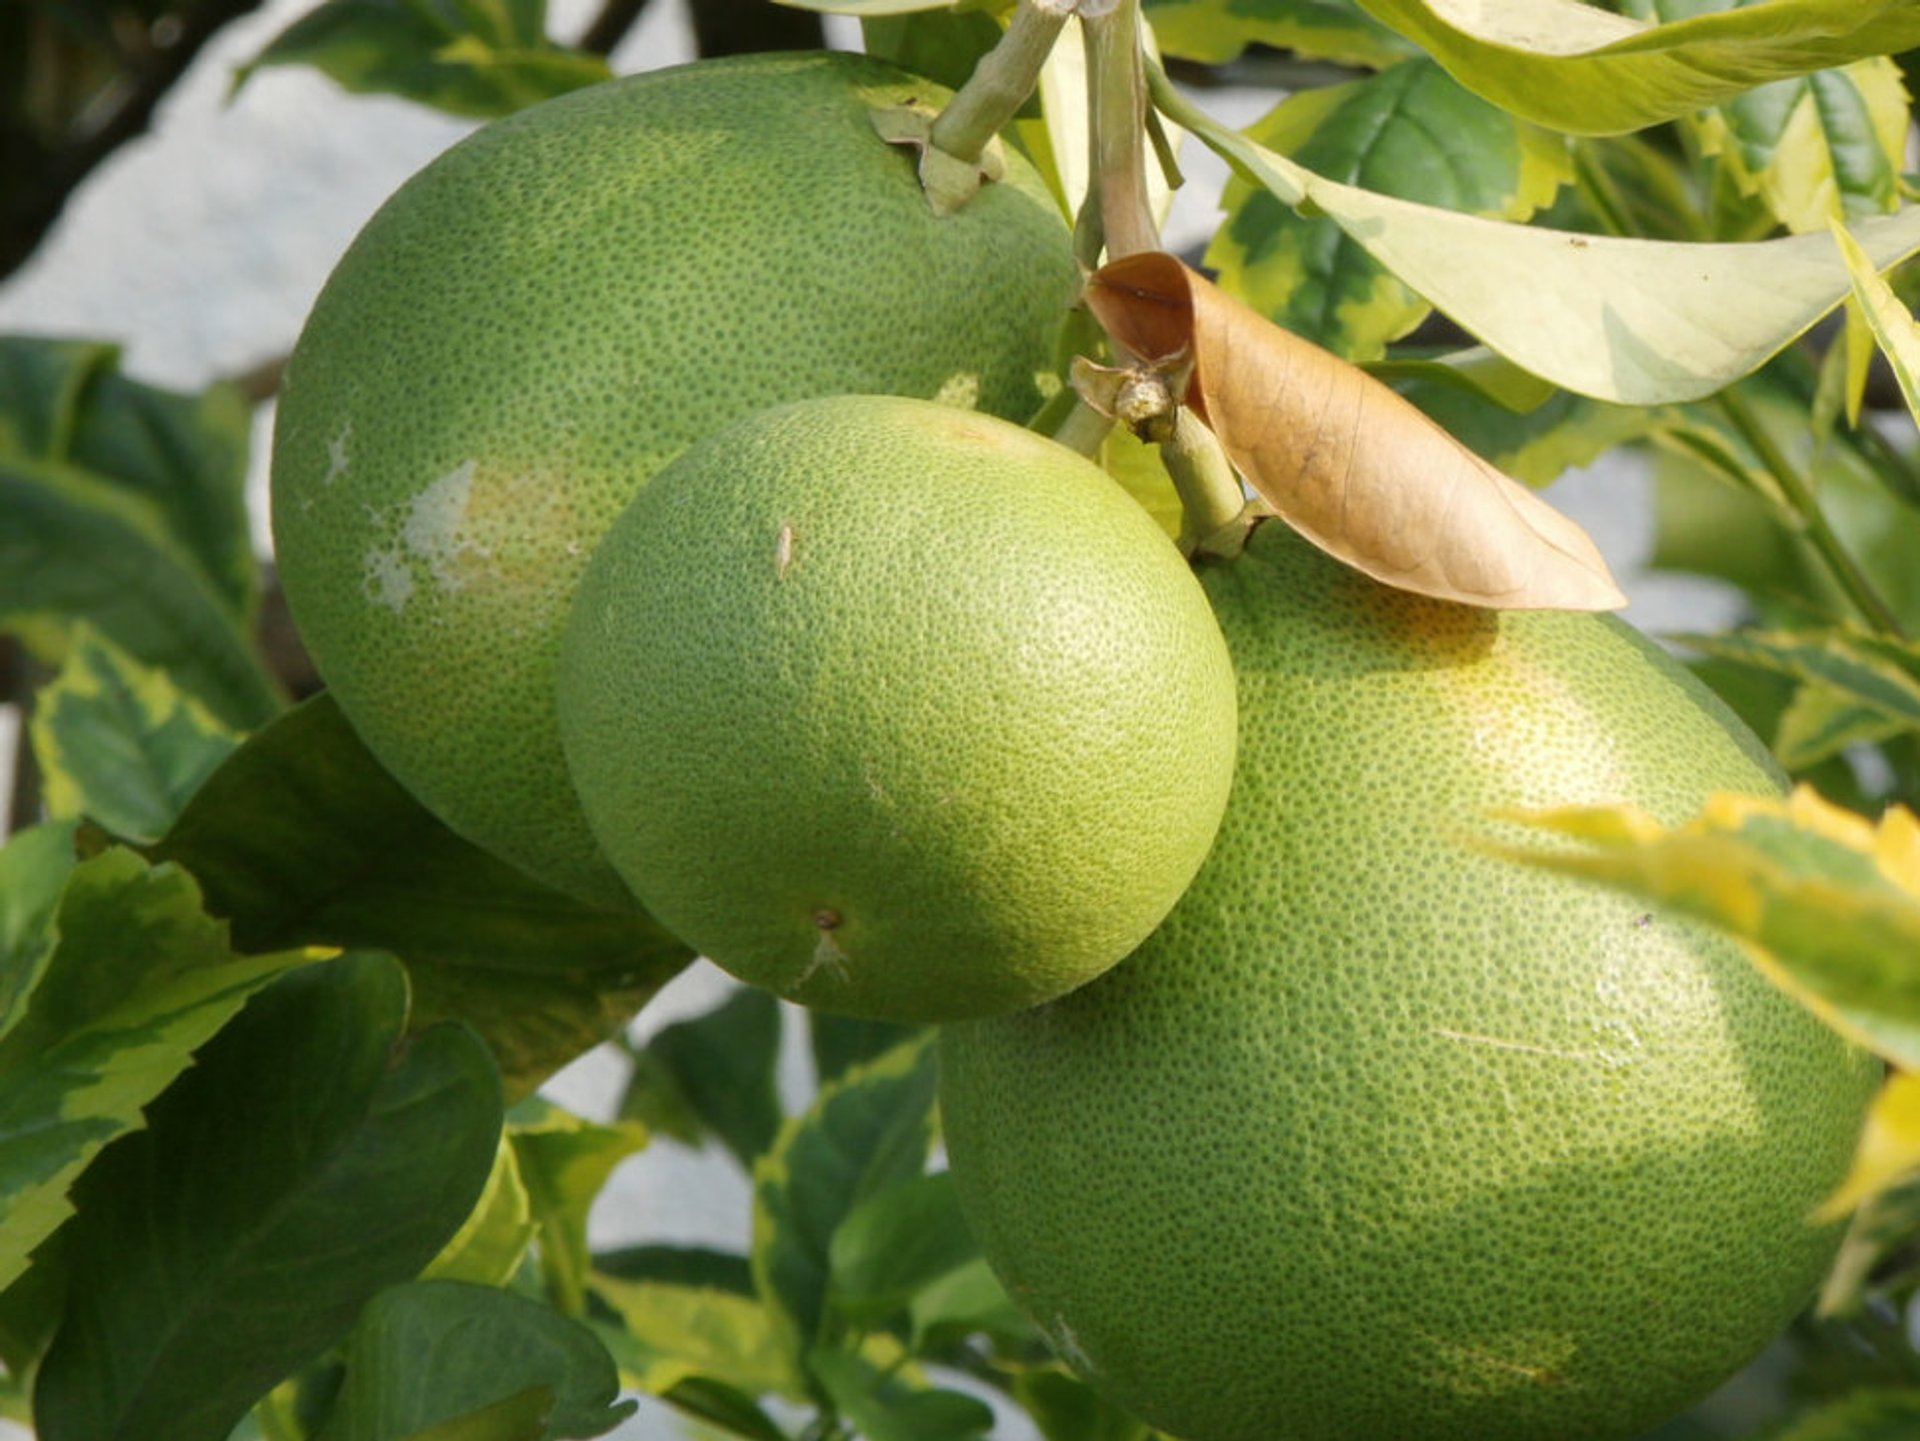 Pomelo in Singapore - Best Season 2019